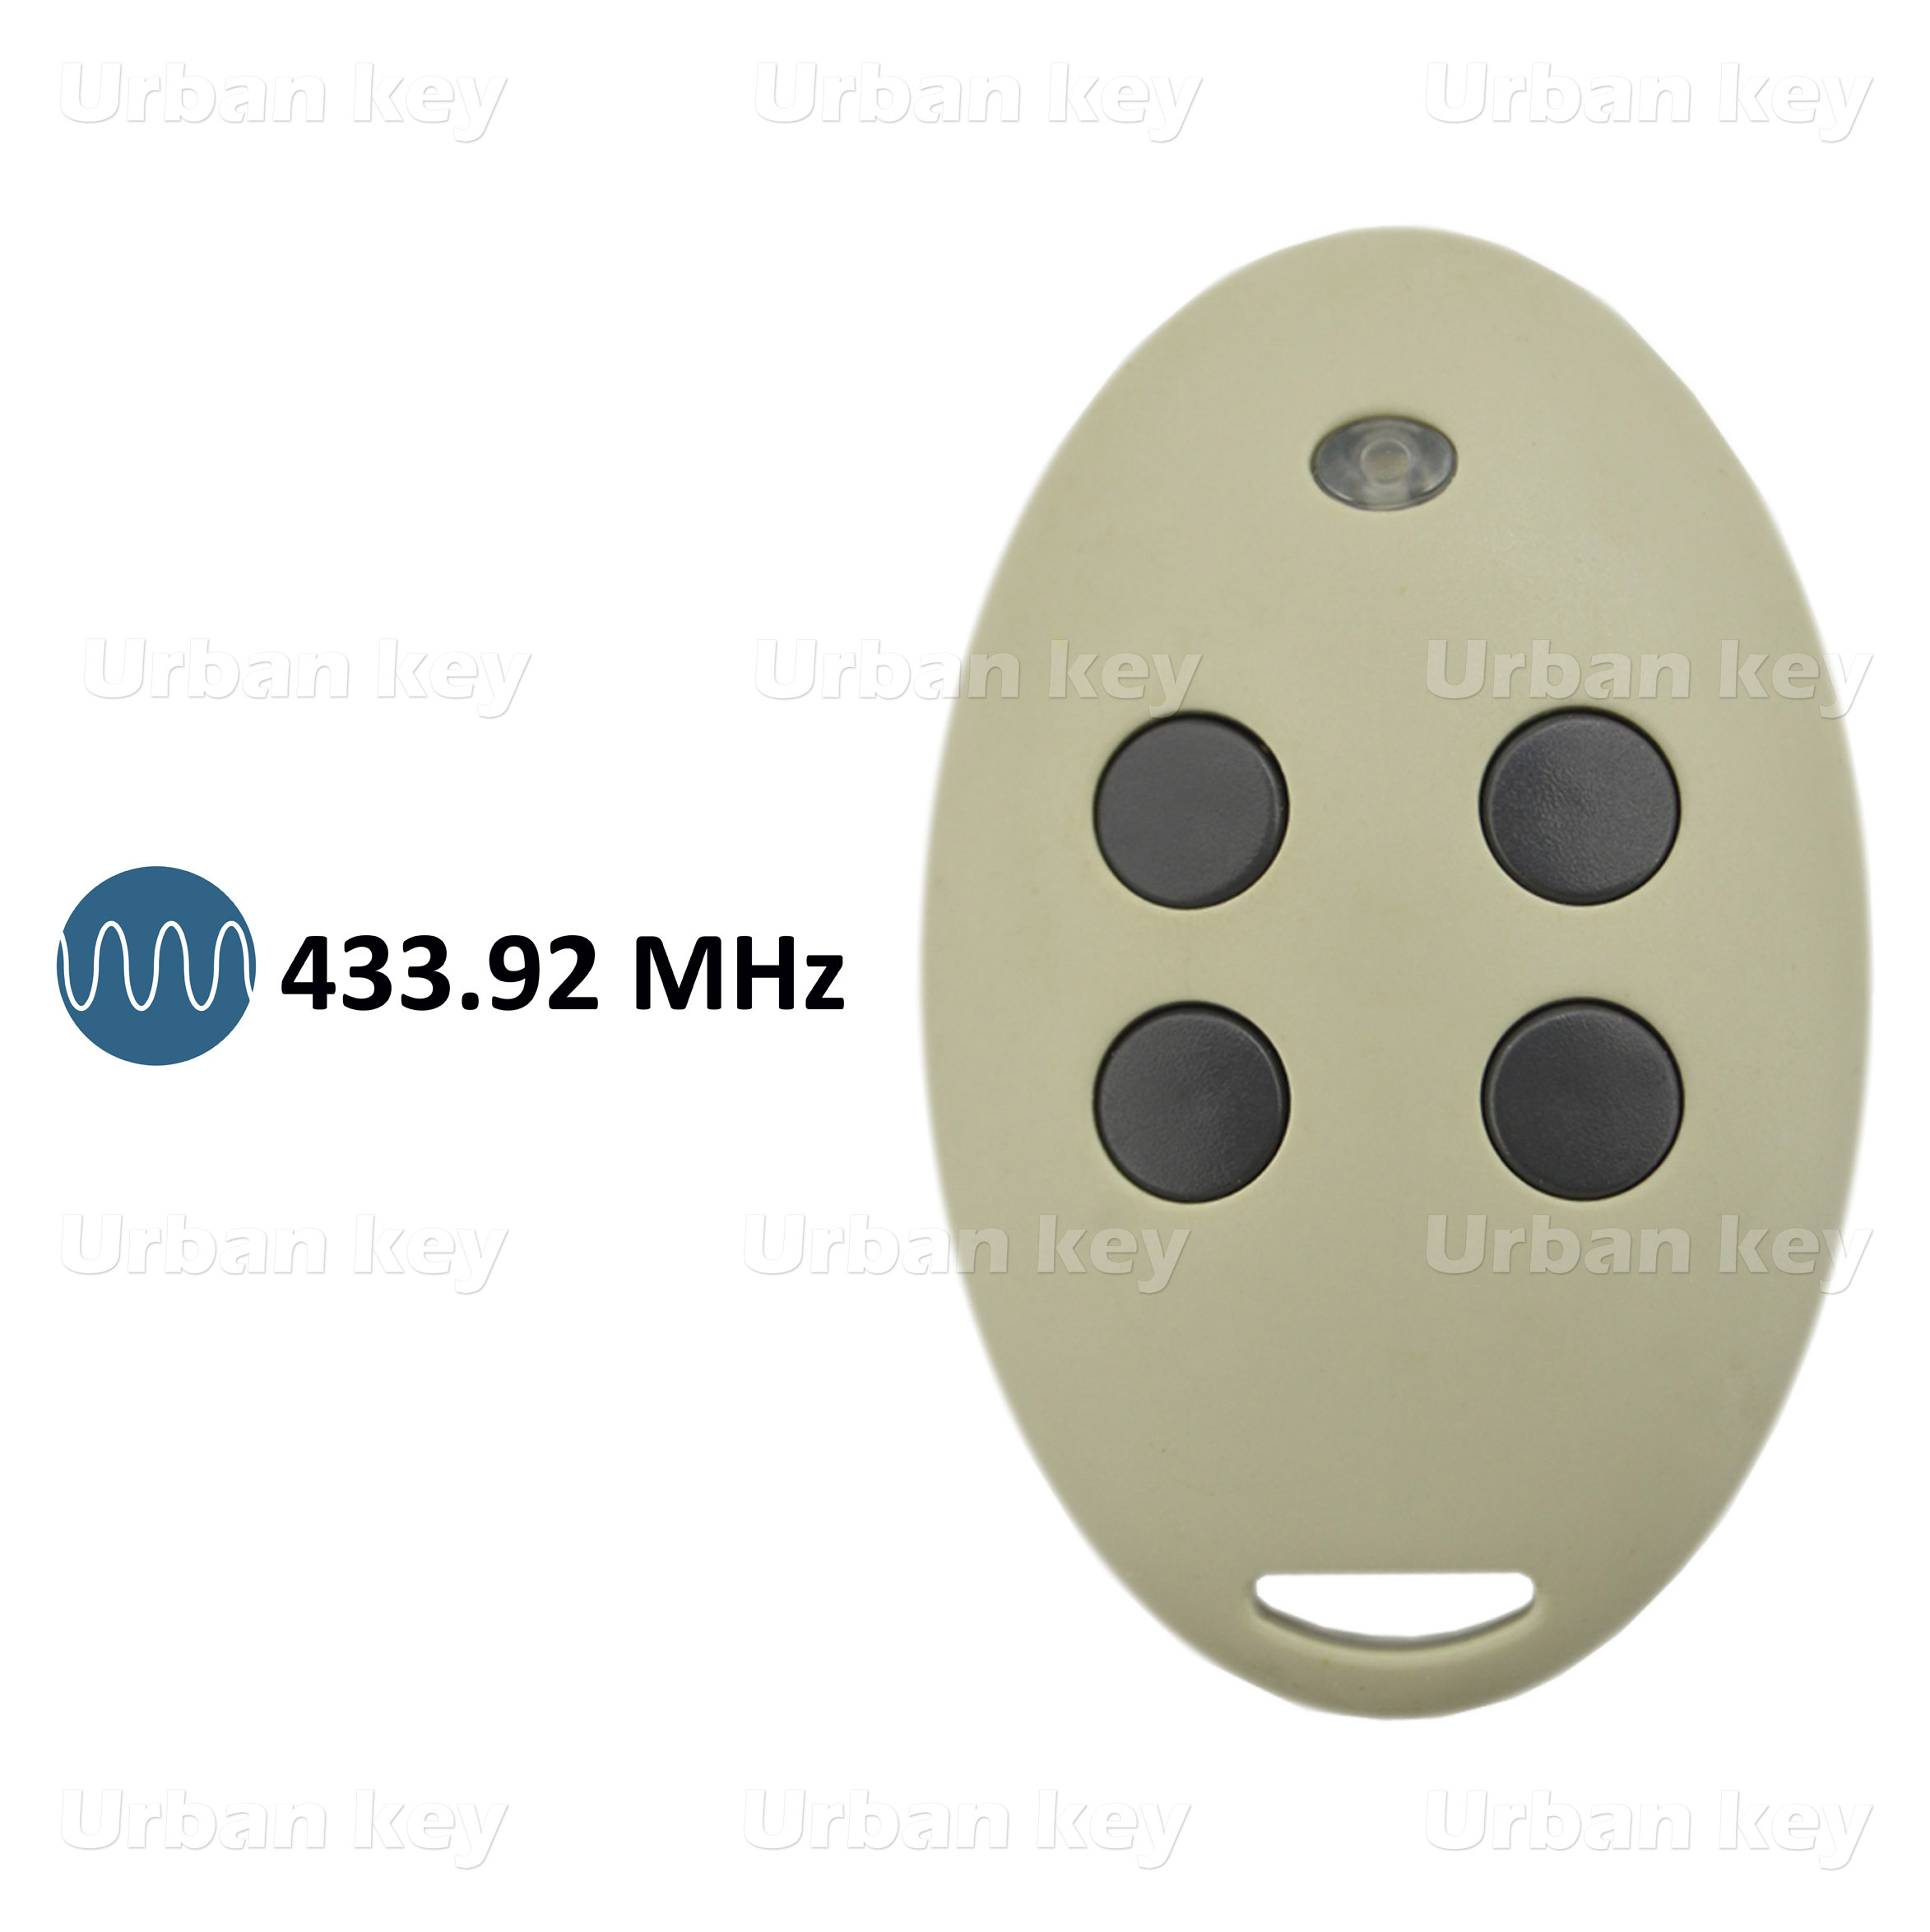 EMISSOR SOMFY MITTO RTR 433MHZ 4 CANAIS